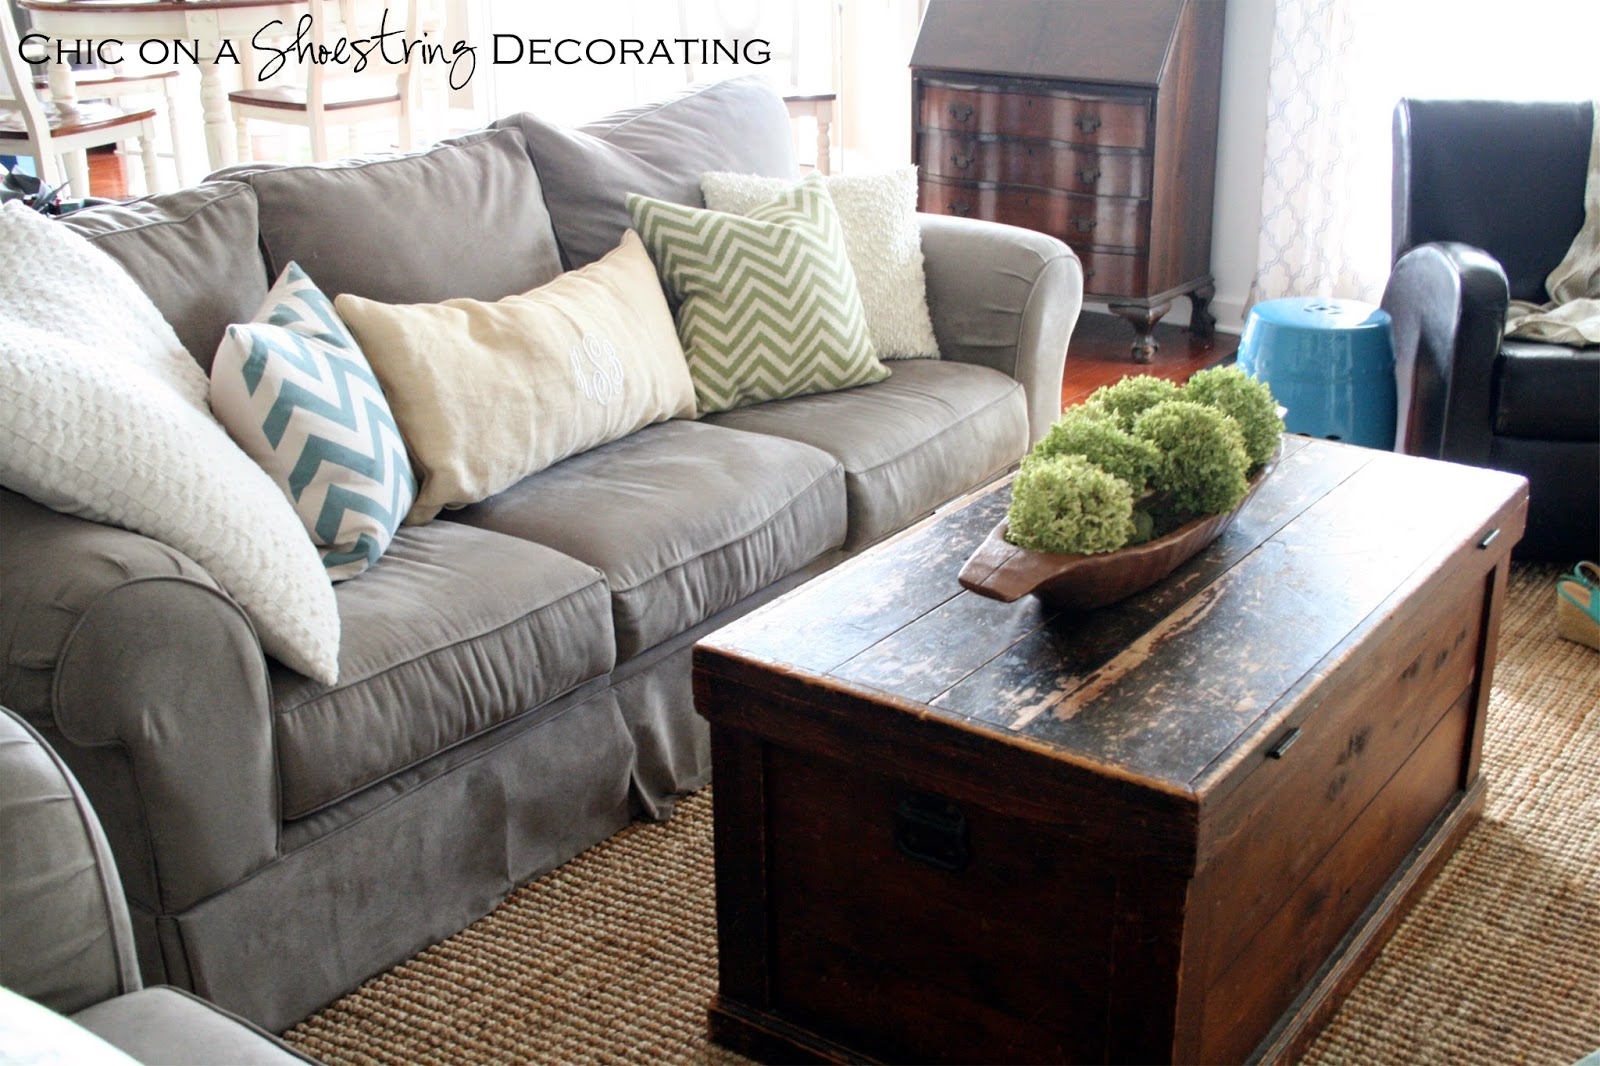 farmhouse chic decor, chic on a shoestring decorating blog